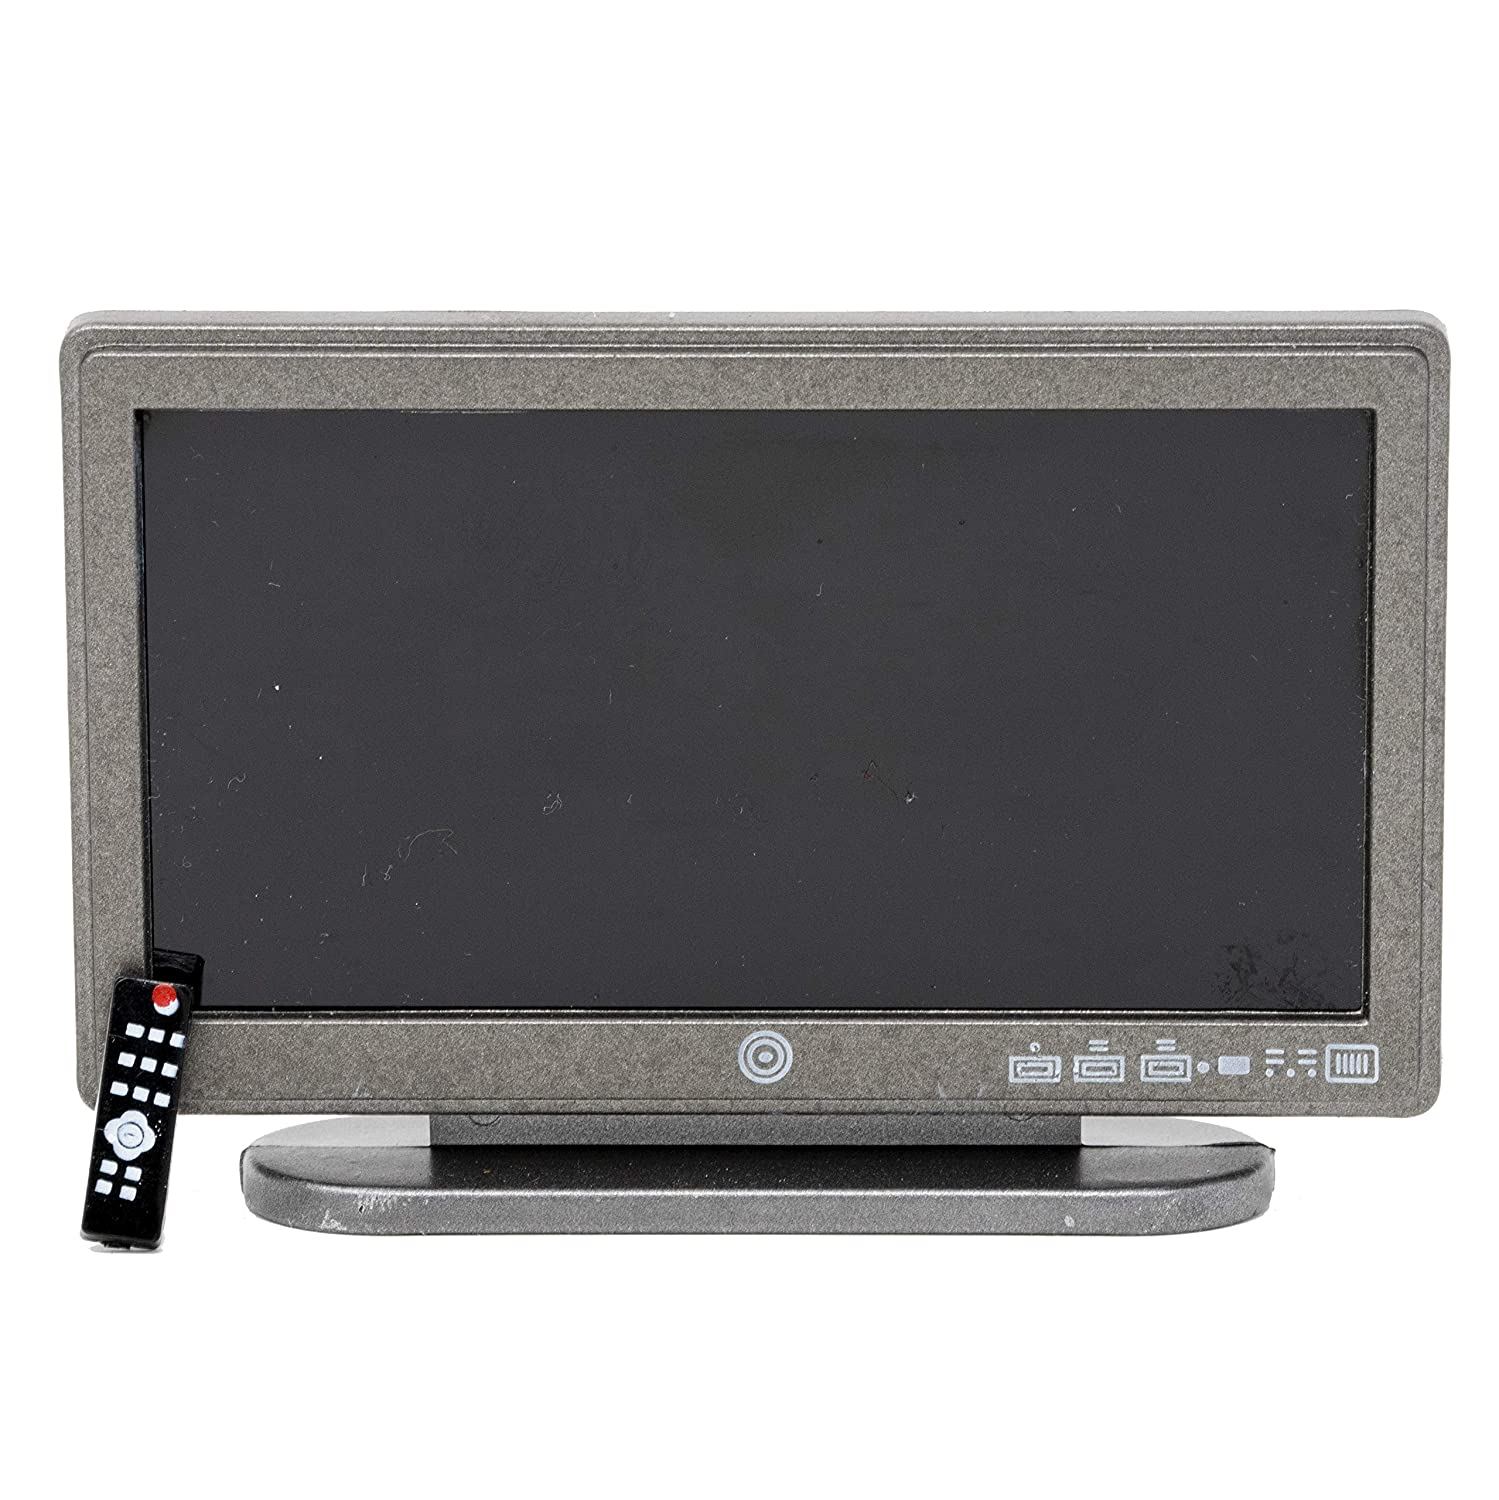 American Heritage Industries TV for Dollhouse- Dollhouse TV at 1:12 Size, Mini Television for Your Mini Dollhouse Furniture